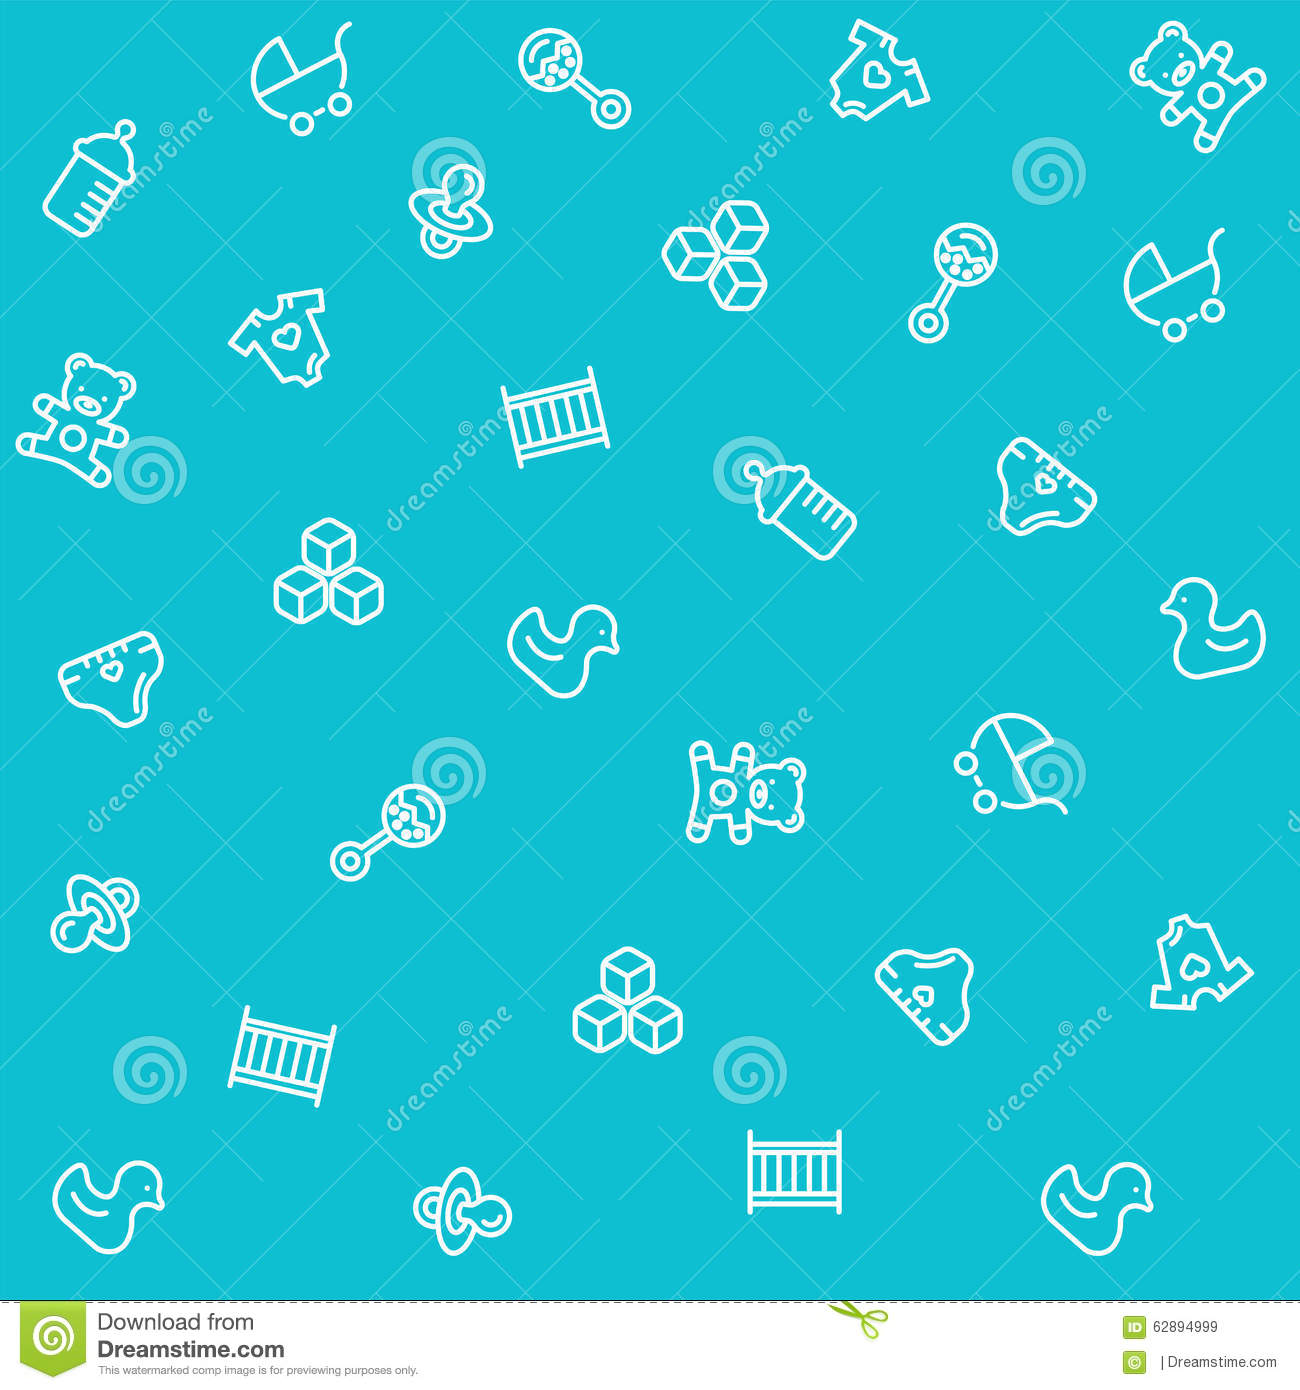 Baby Seamless Pattern Stock Vector - Image: 62894999